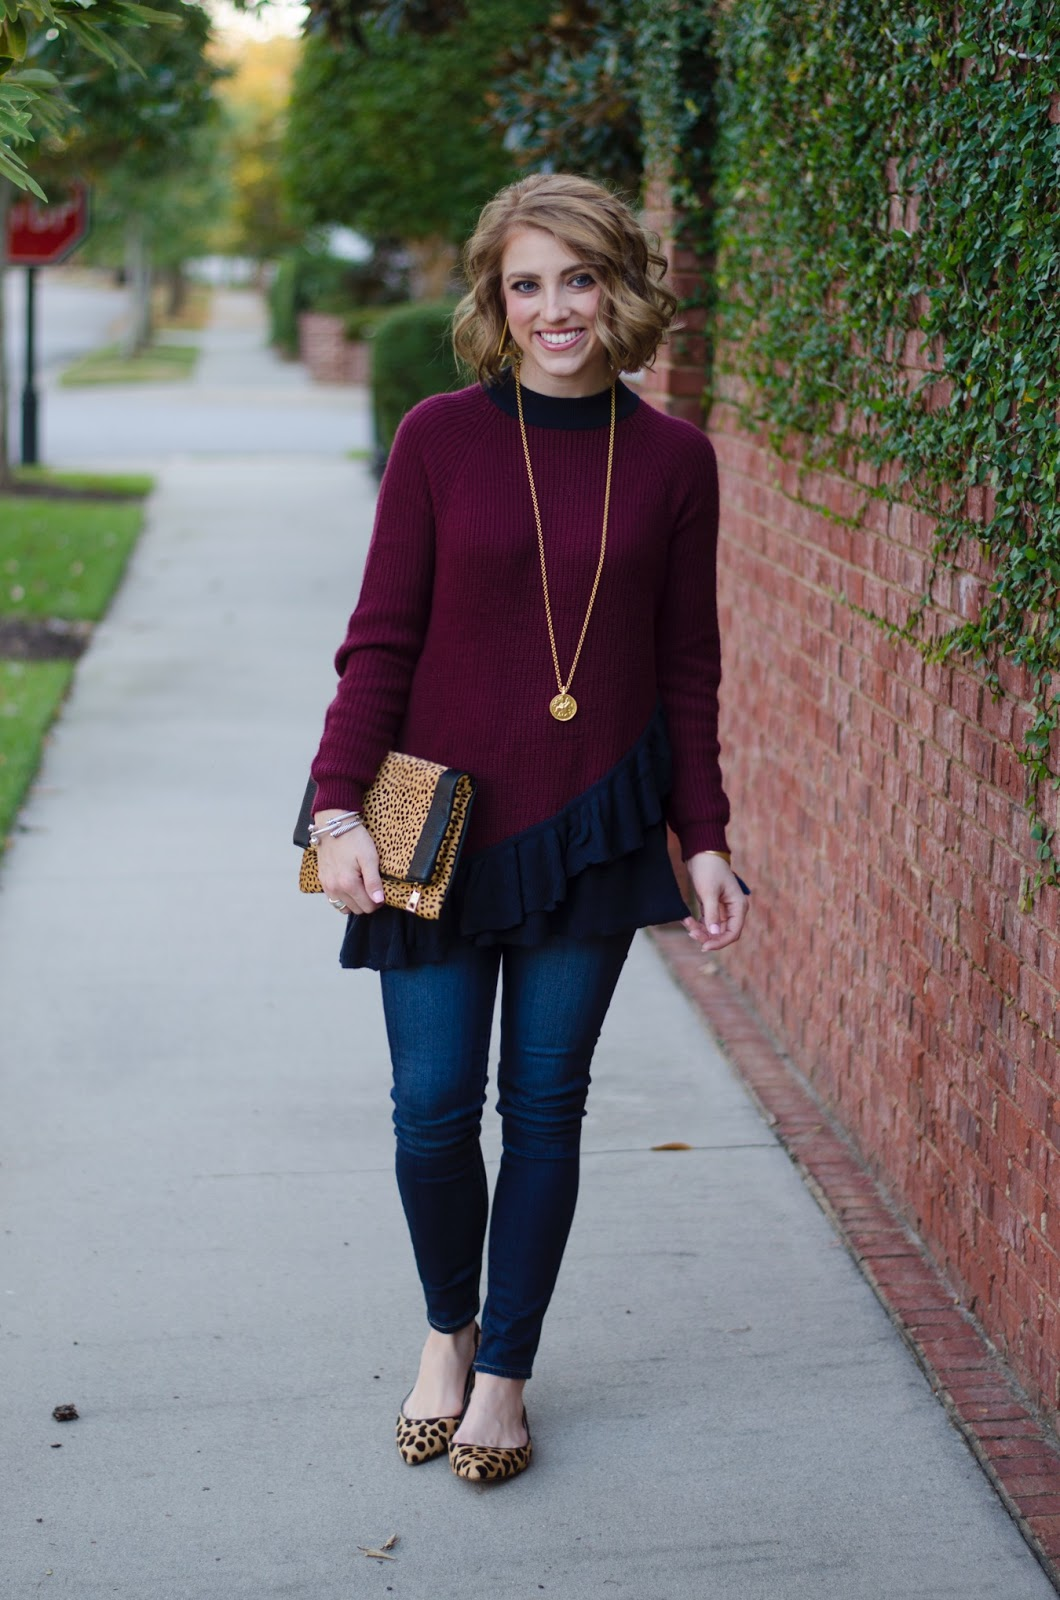 Ruffle Sweater - Something Delightful Blog